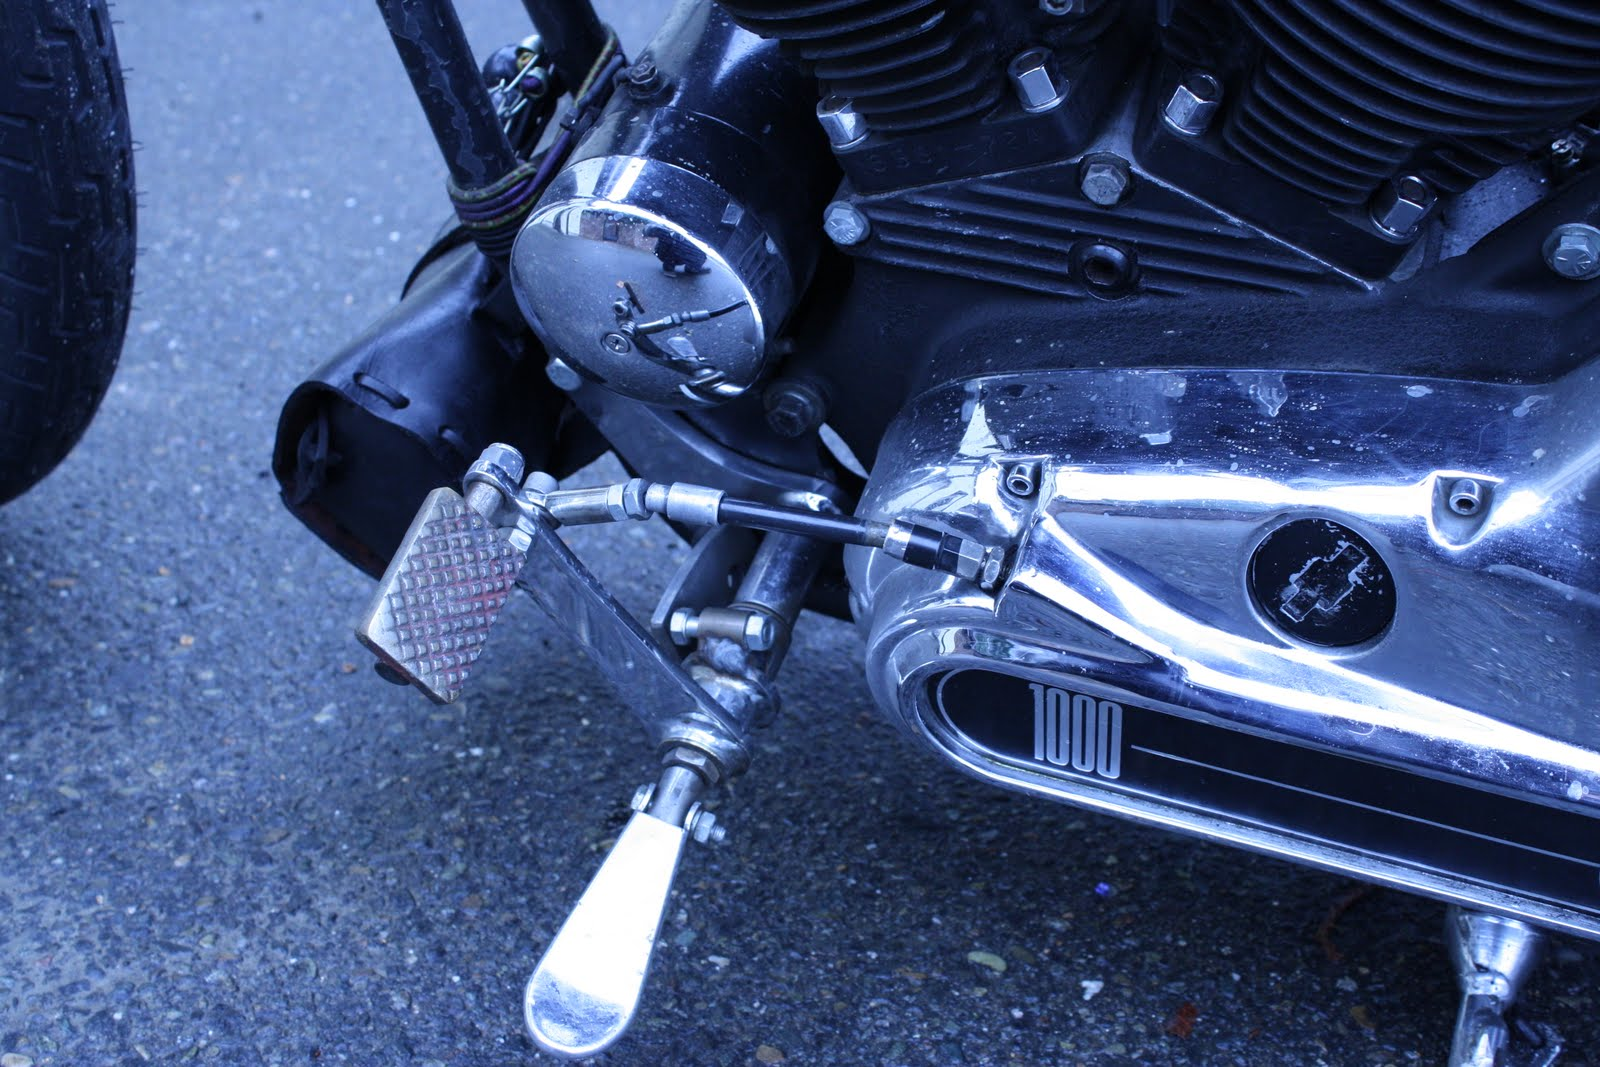 Jockey Shift for Sportster http://oldstfcycleshop.blogspot.com/2011/02/ironhead-sportster-jockey-shift.html